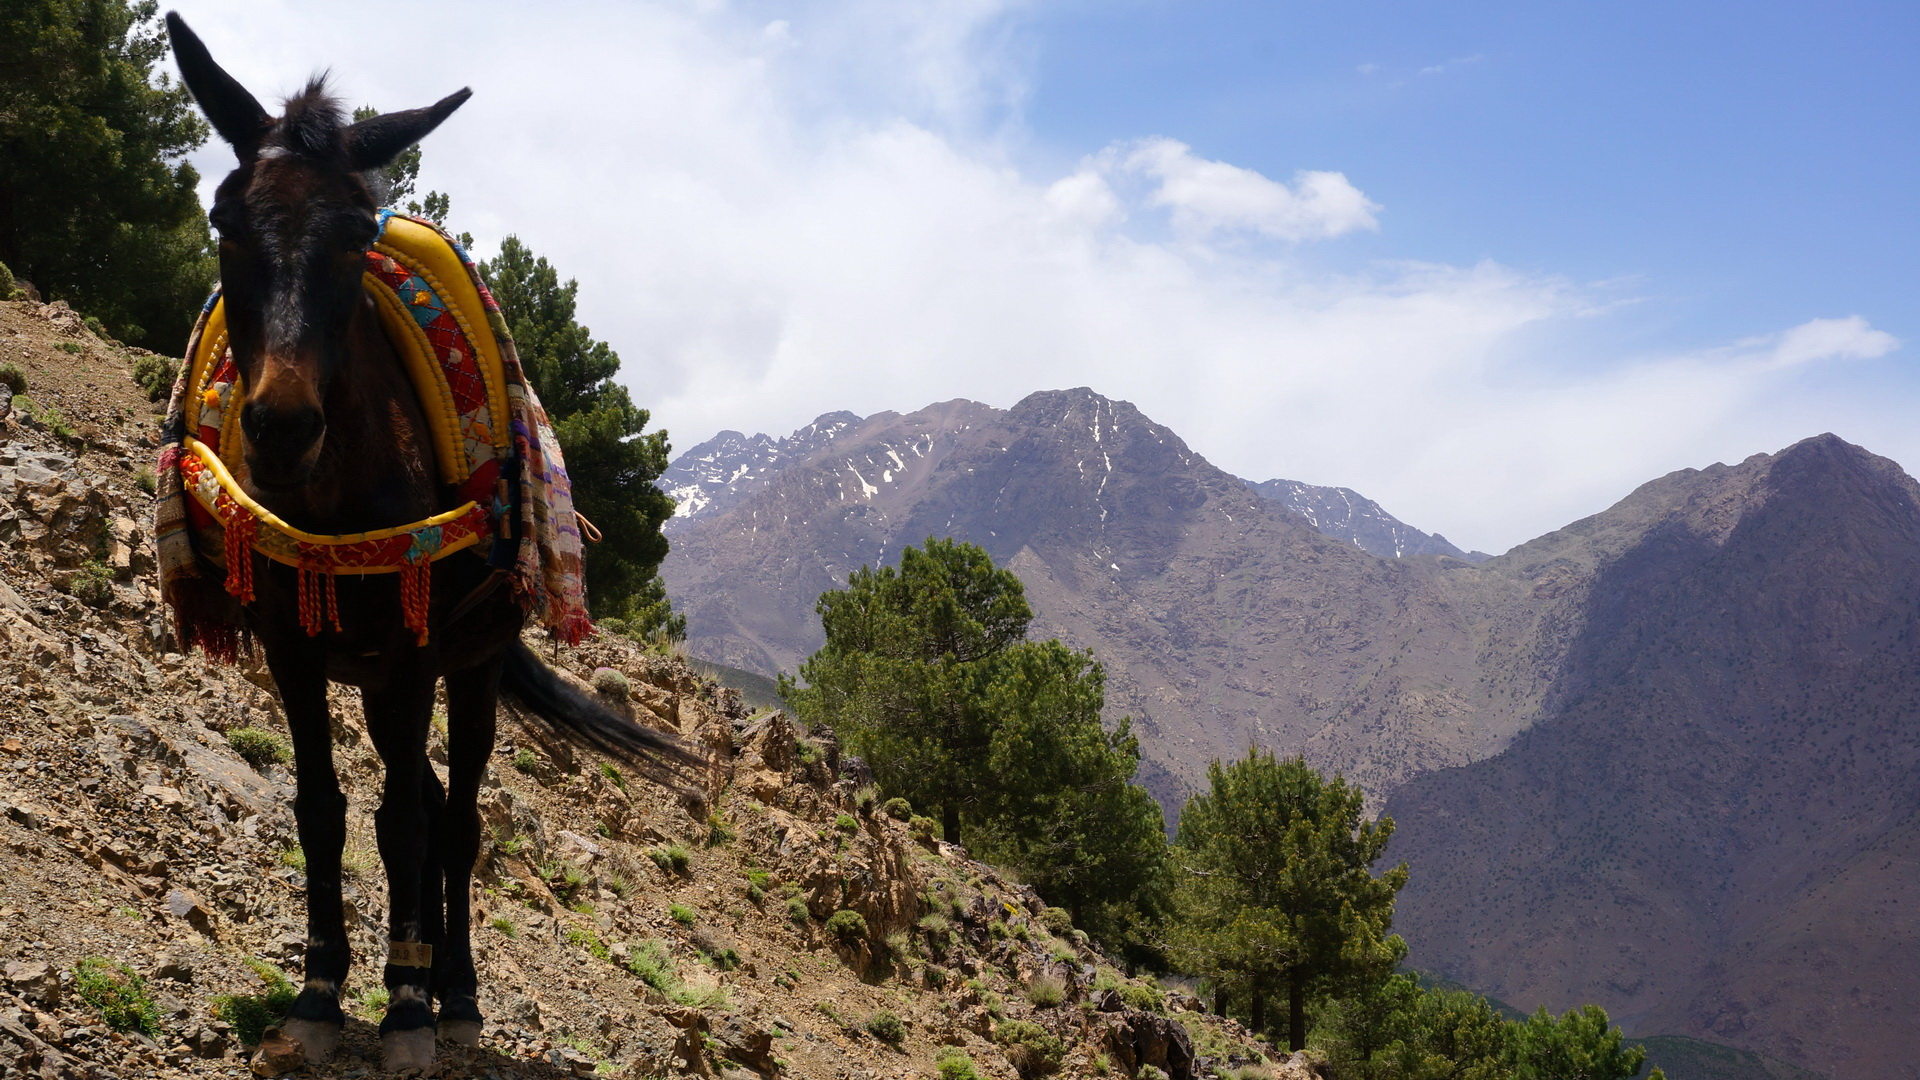 pathfinders treks - 3 days hiking in morocco atlas mountains - three berber valleys